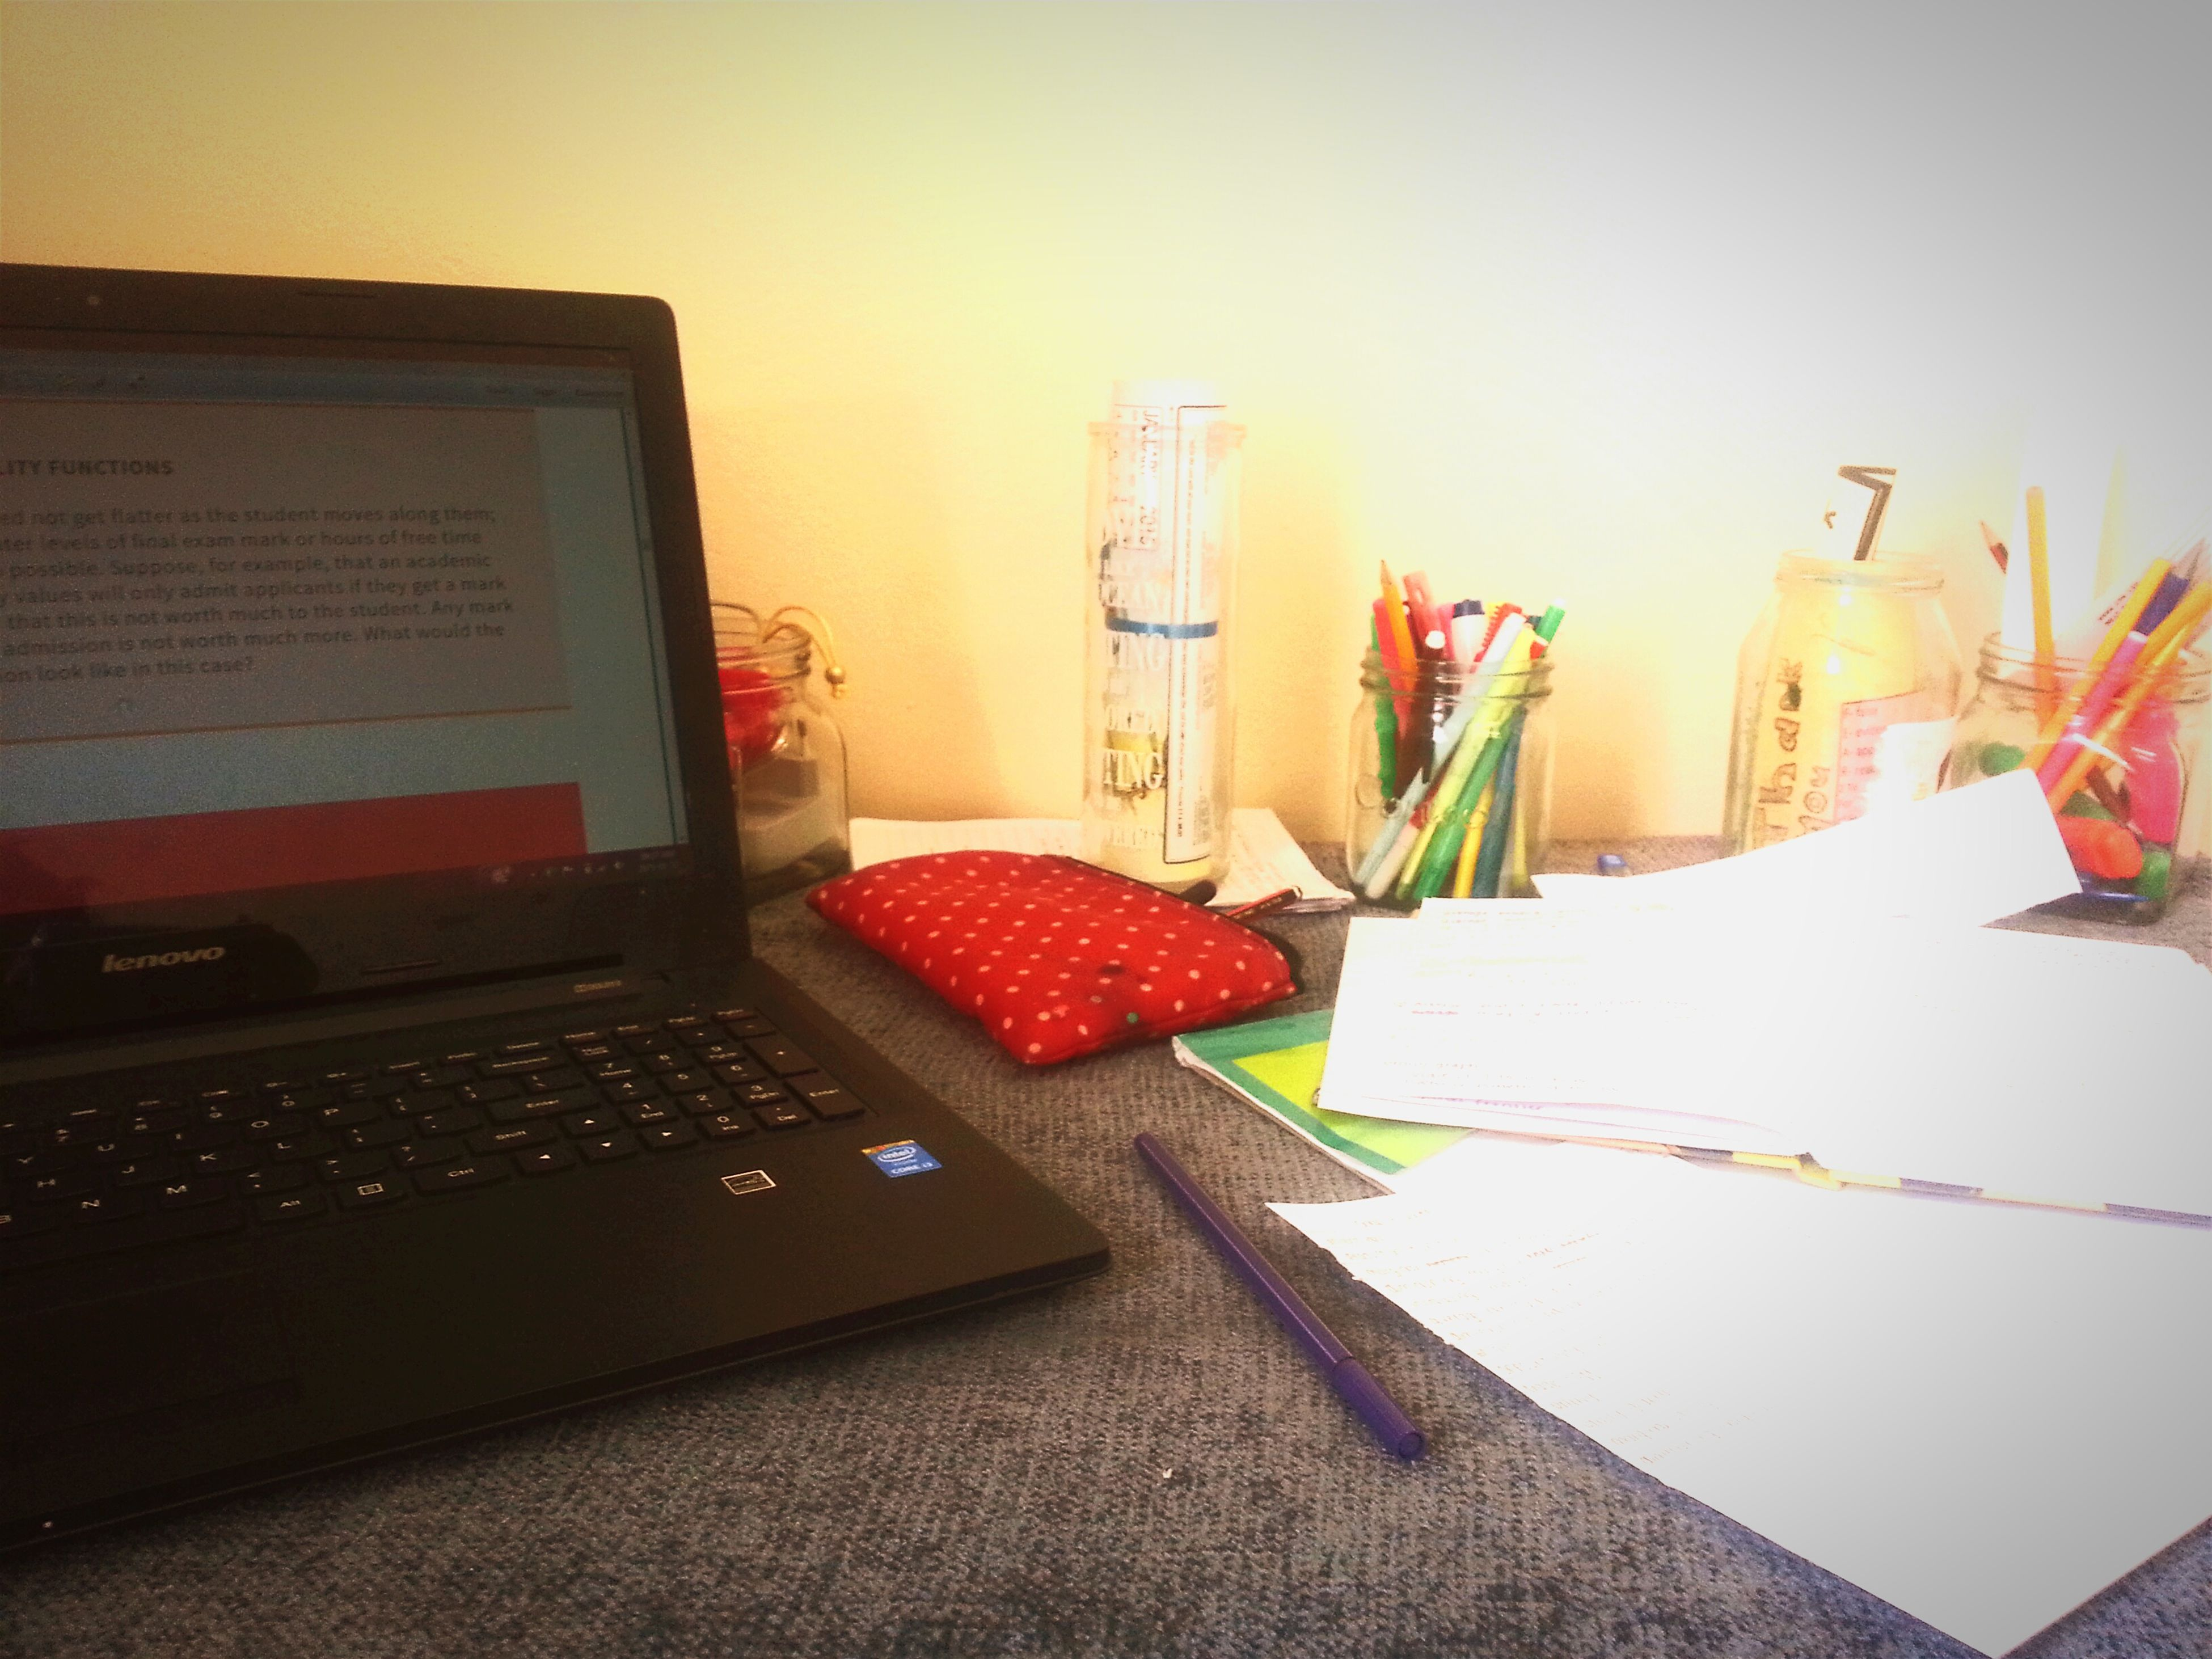 When your desk becomes your new bed! Cramming For Exams Studentlife  Anyboday Want To Skype?